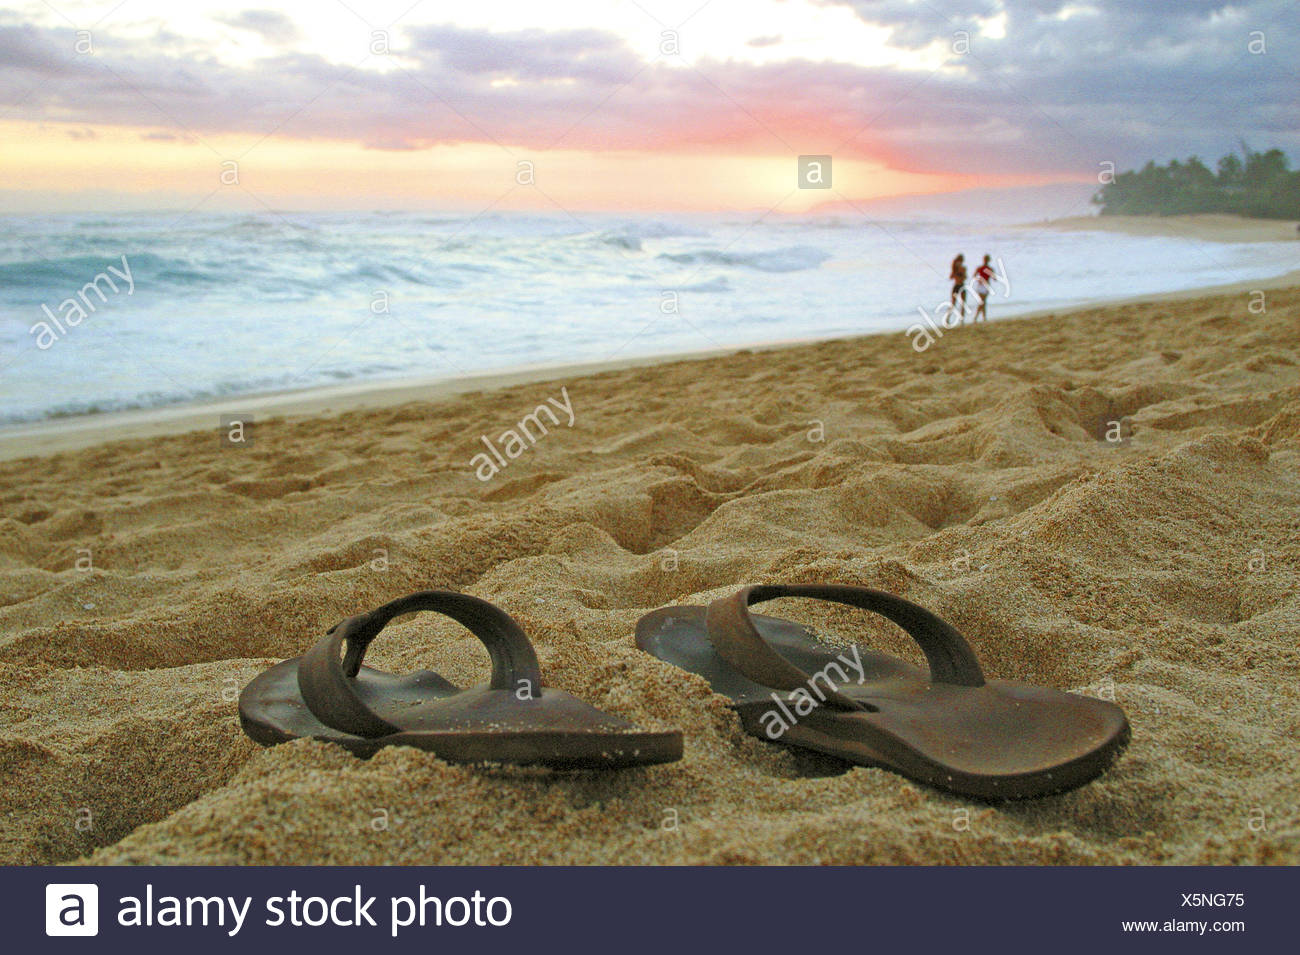 sun sets over sandy beach on Oahu's northshore as this slipper owner opts to go barefoot - Stock Image